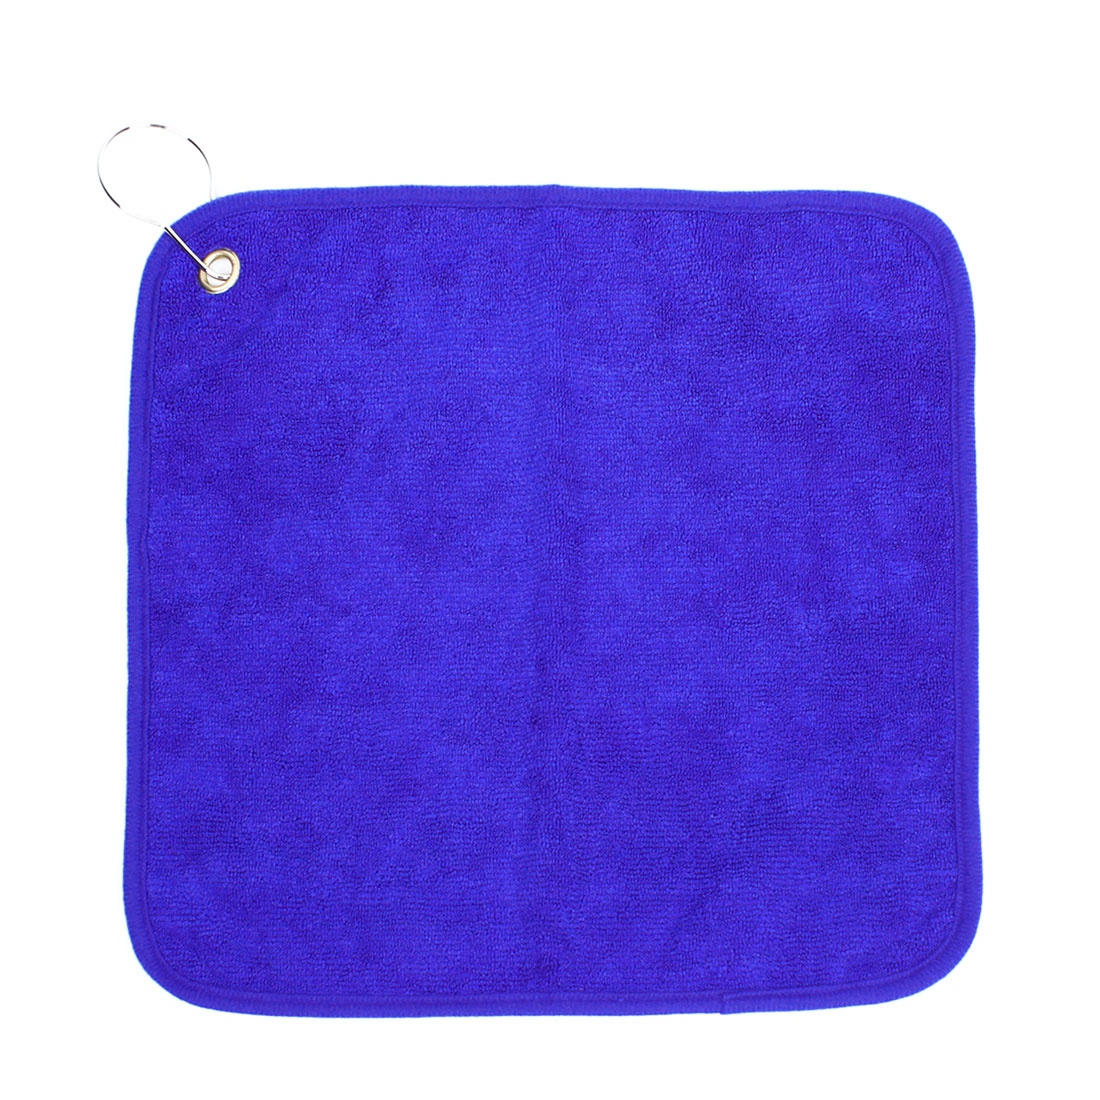 Microfiber Soft Face Washing Glass Cleaning Towel Tool Royal Blue